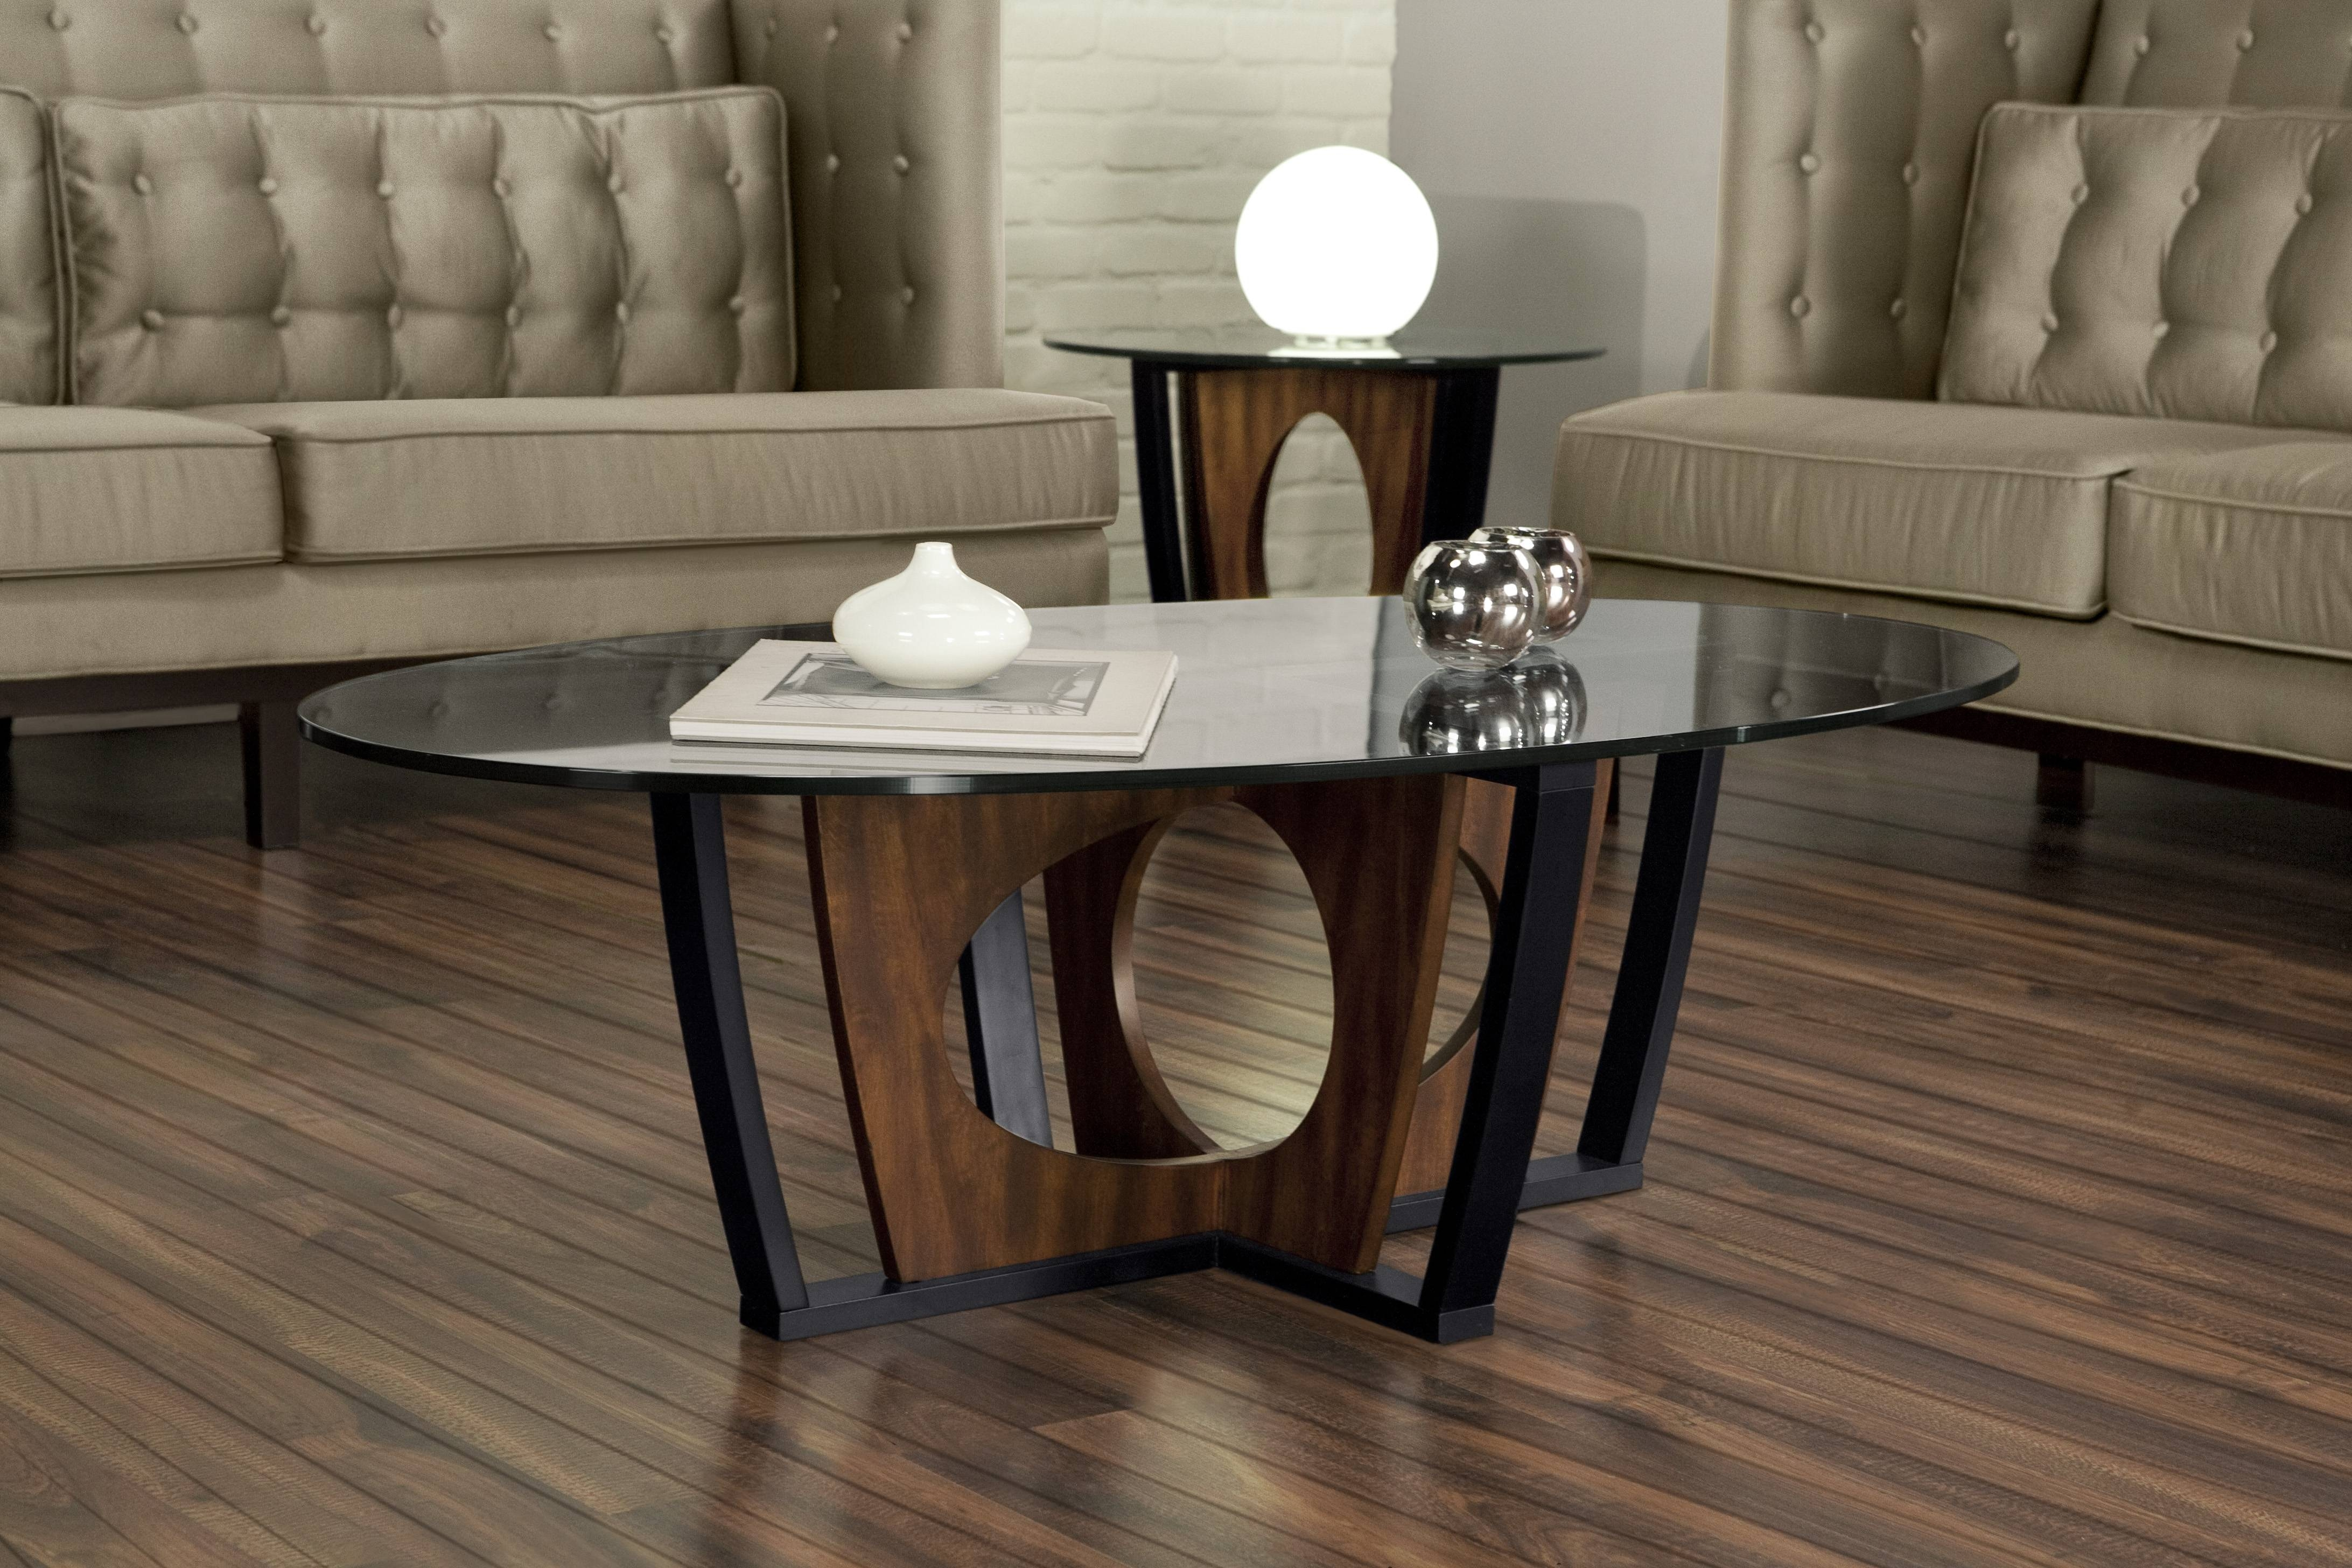 Armen Living Decca Oval Glass Top Coffee Table | Coffee Tables within Oval Glass Coffee Tables (Image 3 of 30)